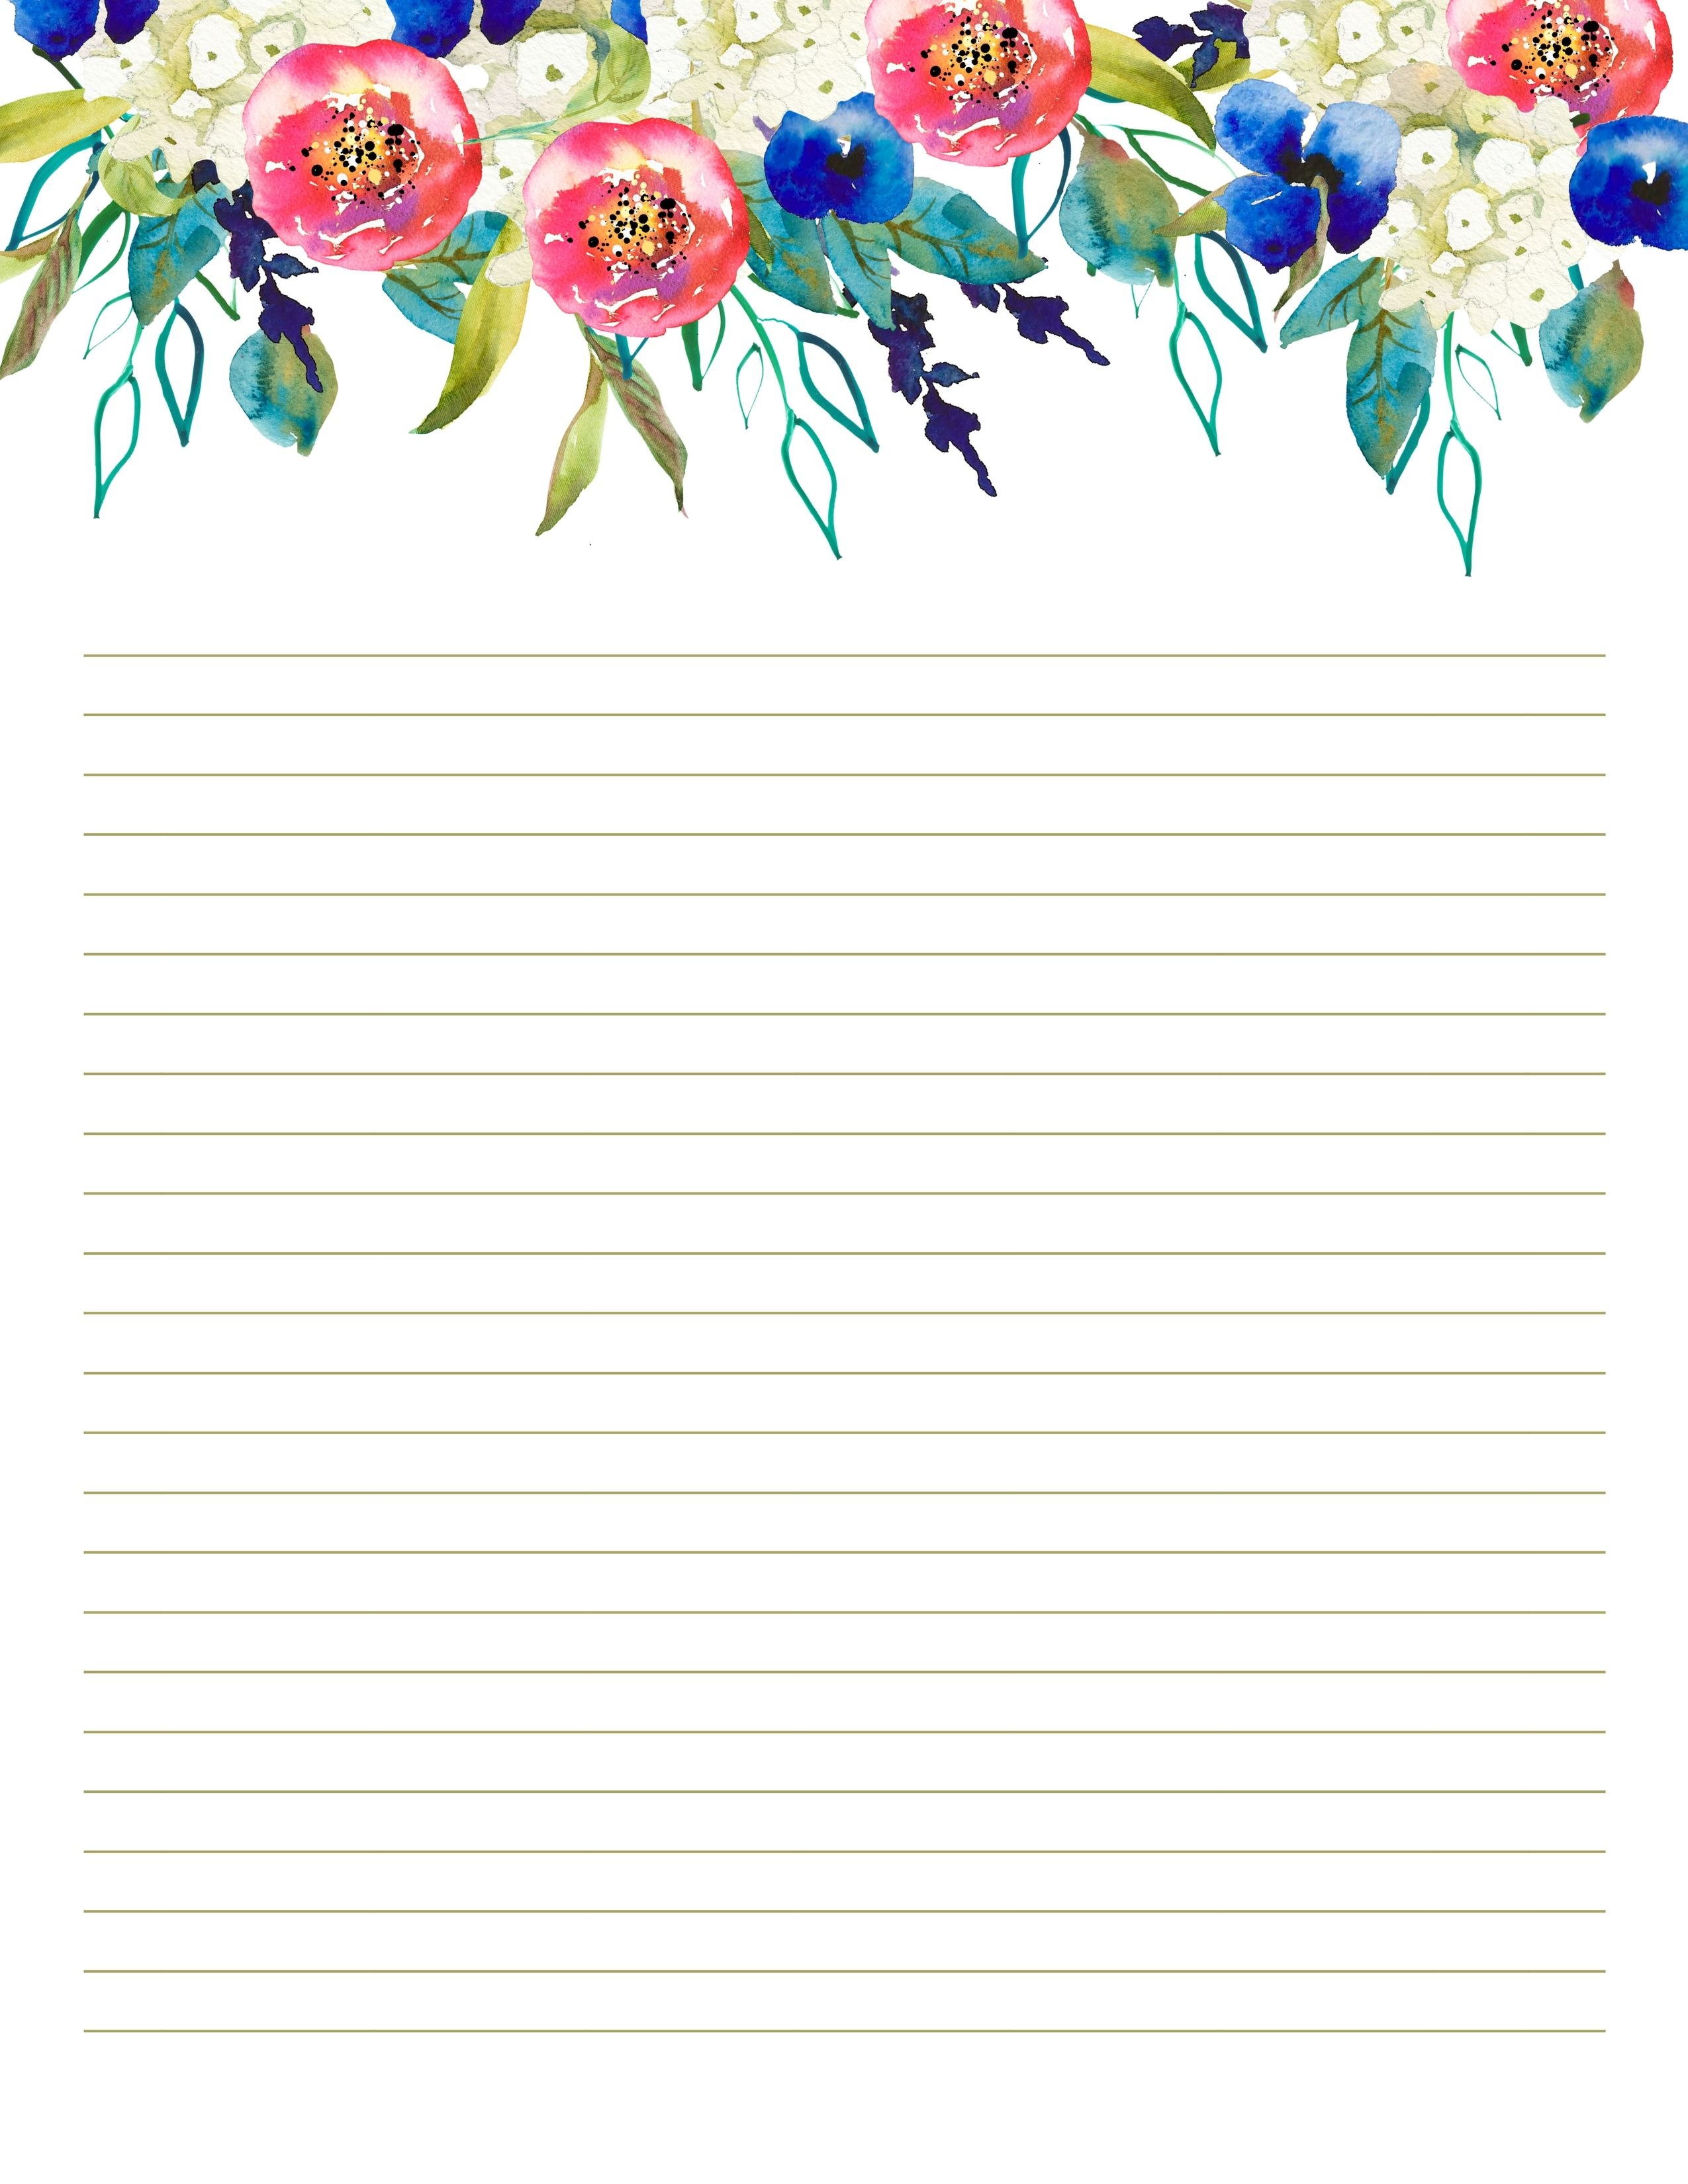 picture about Downloadable Stationery named Printable stationery established, Floral Stationery Mounted